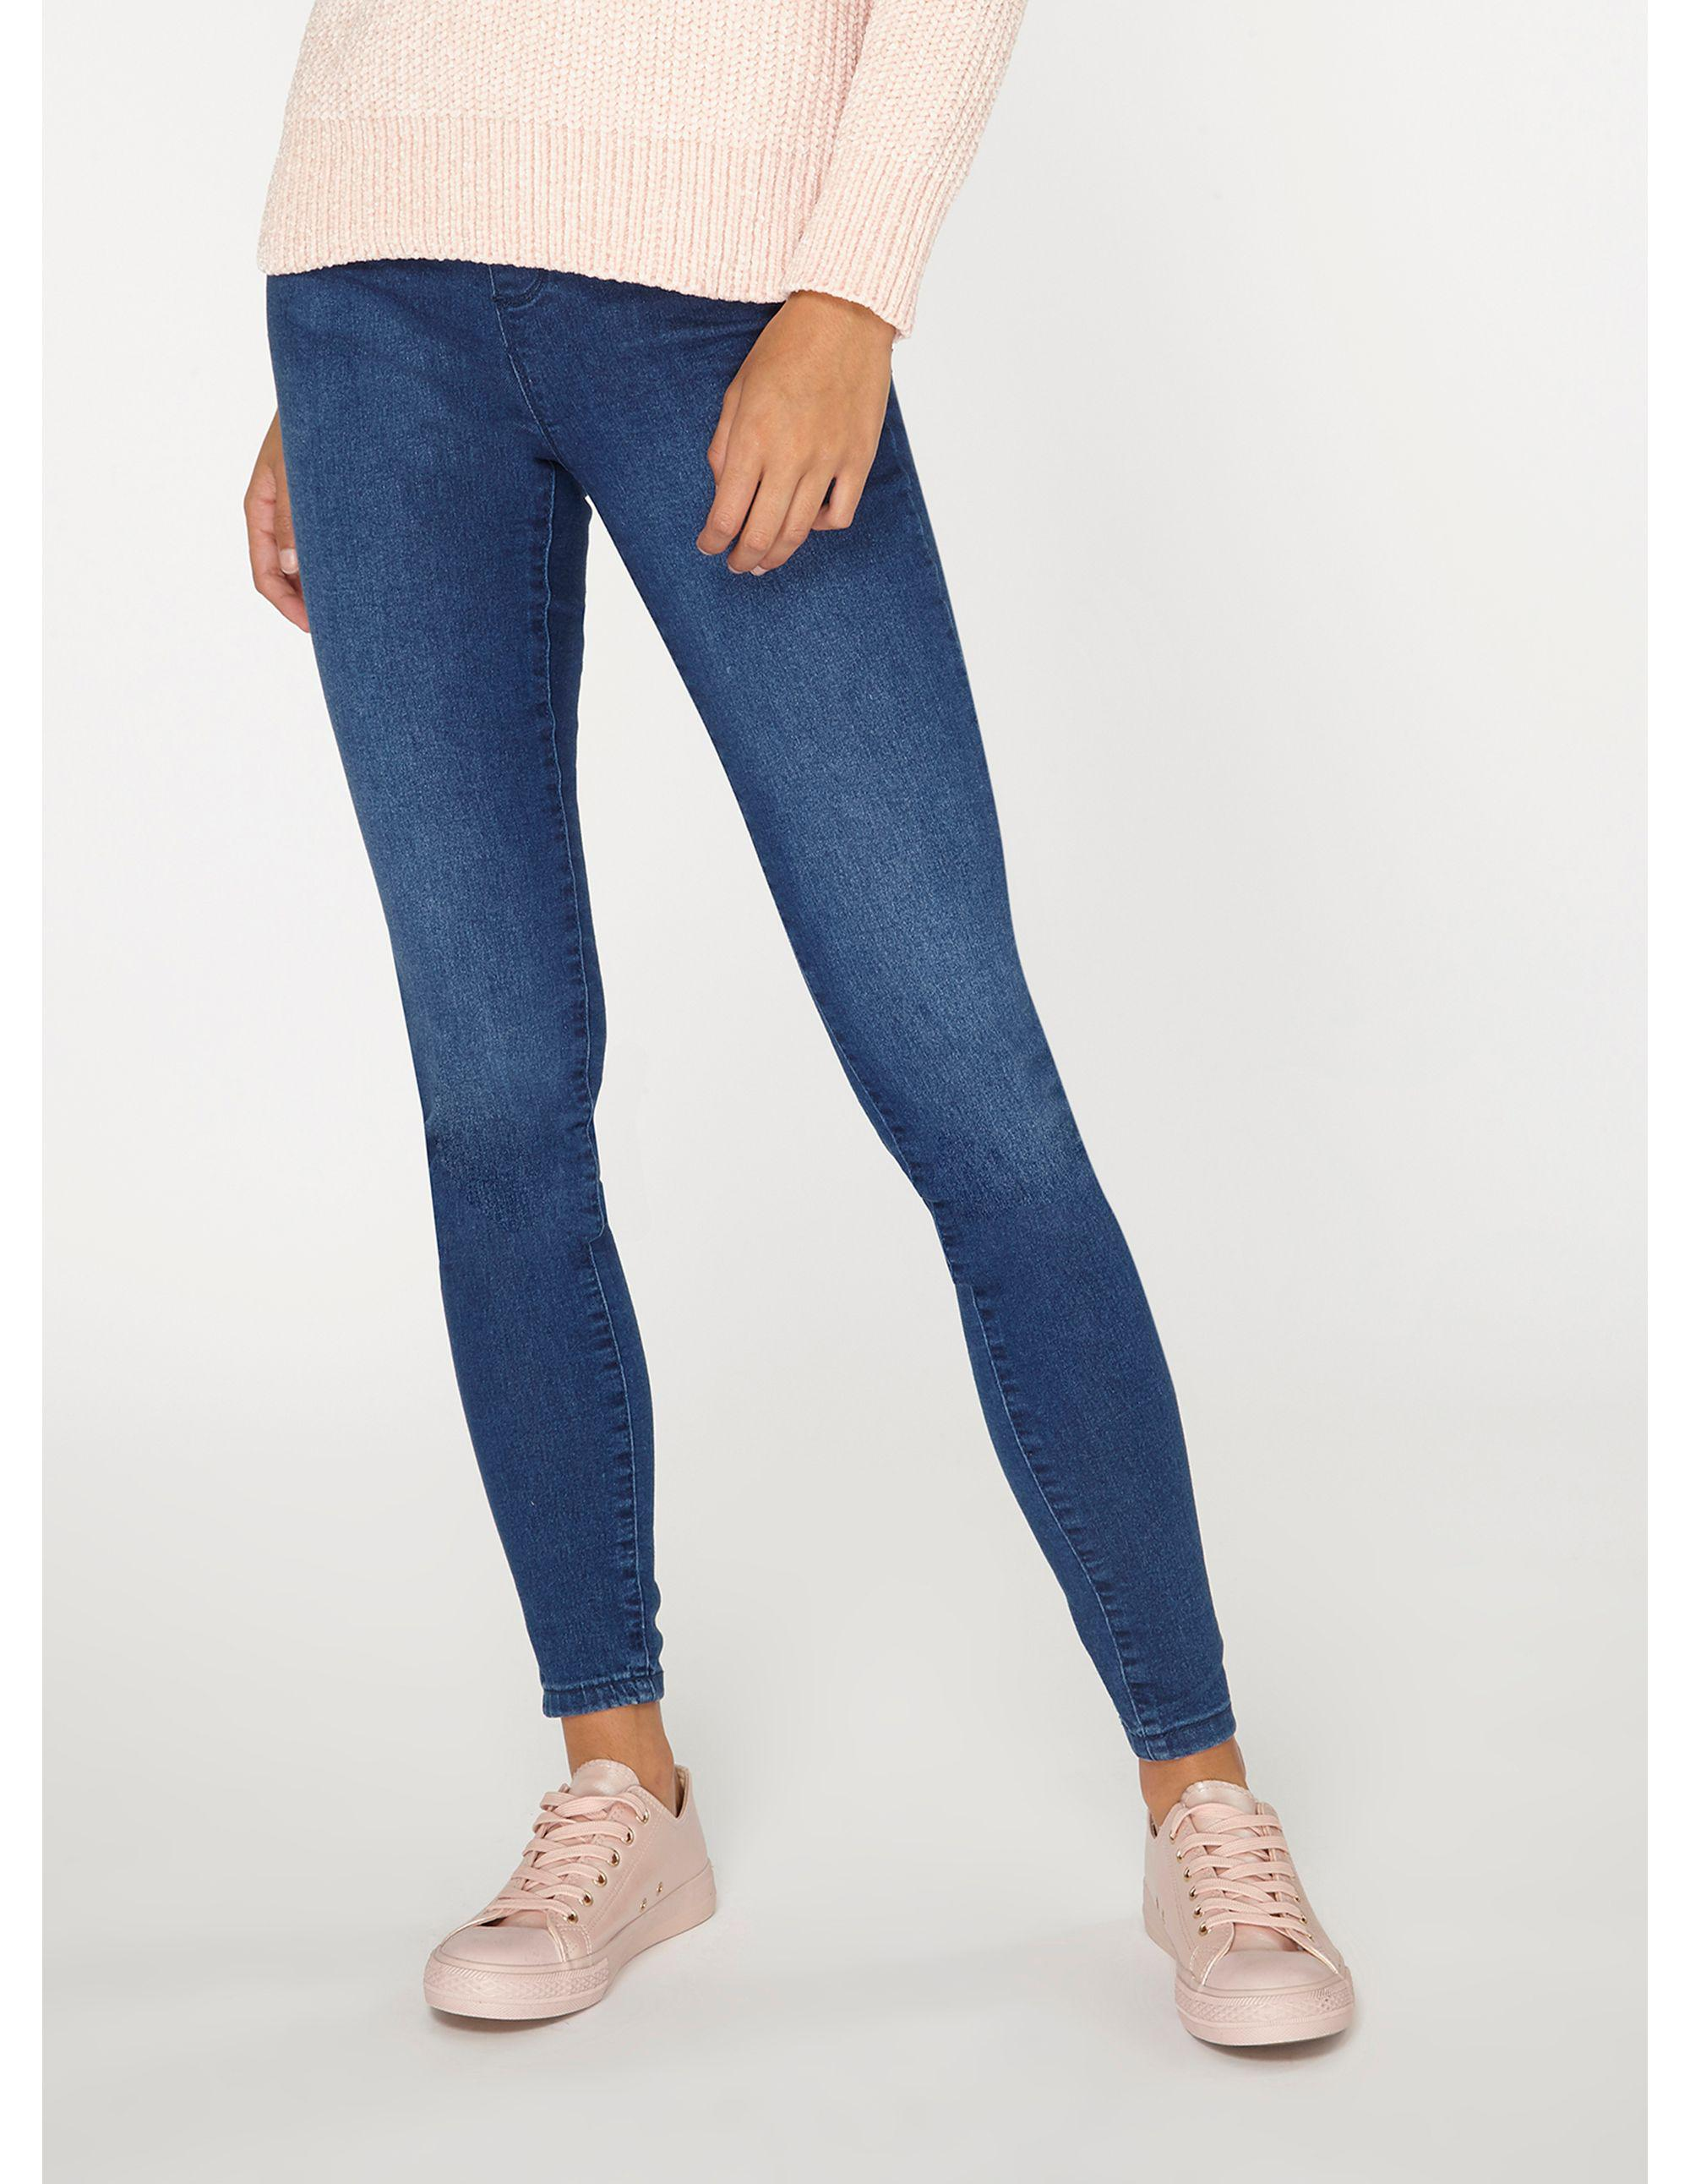 bc698c0319ed67 Dorothy Perkins Tall Mid Wash Blue Eden Jeans in Blue - Lyst